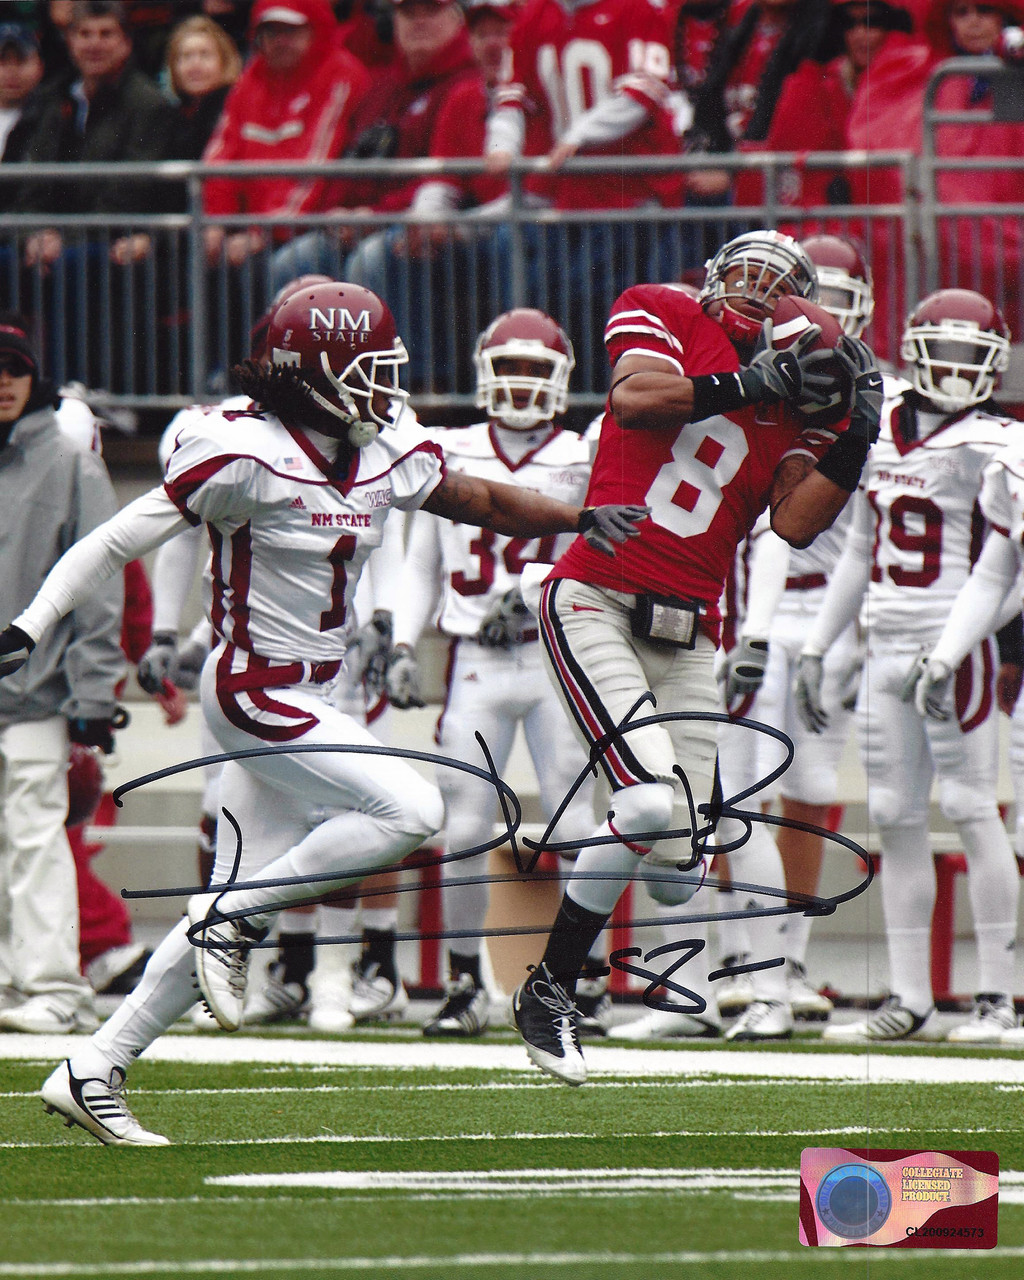 DeVier Posey OSU 8-11 8x10 Autographed Photo - Certified Authentic